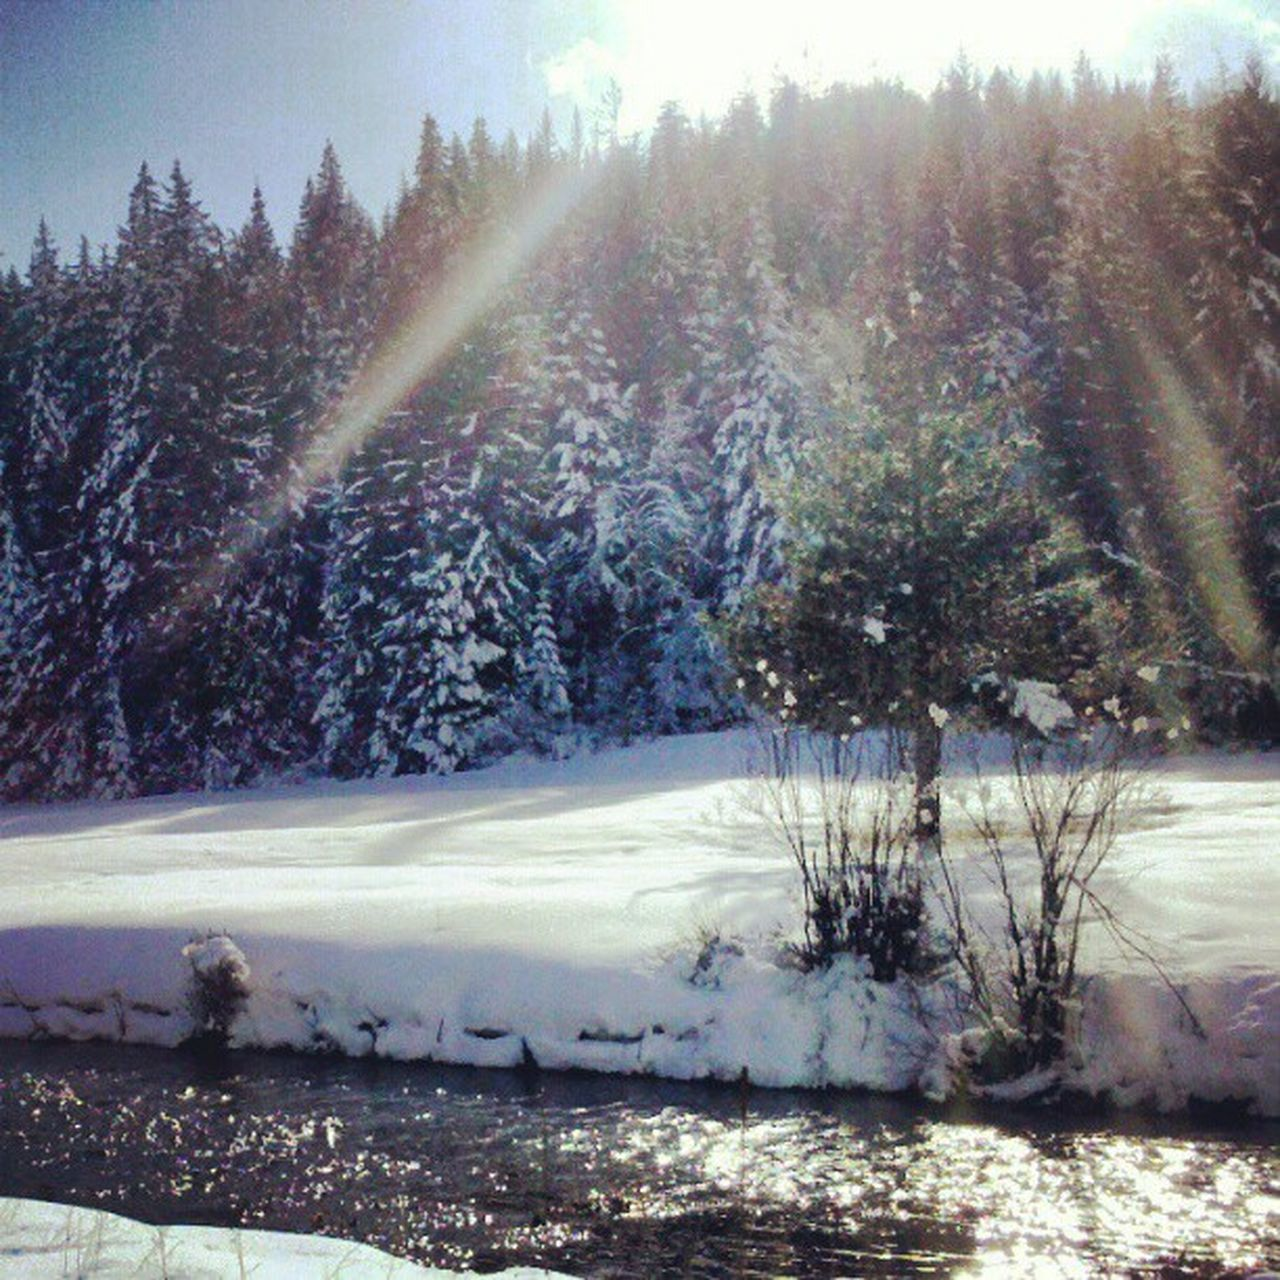 nature, winter, cold temperature, tranquility, tree, tranquil scene, cold, beauty in nature, snow, water, no people, outdoors, scenics, sunlight, day, frozen, landscape, sky